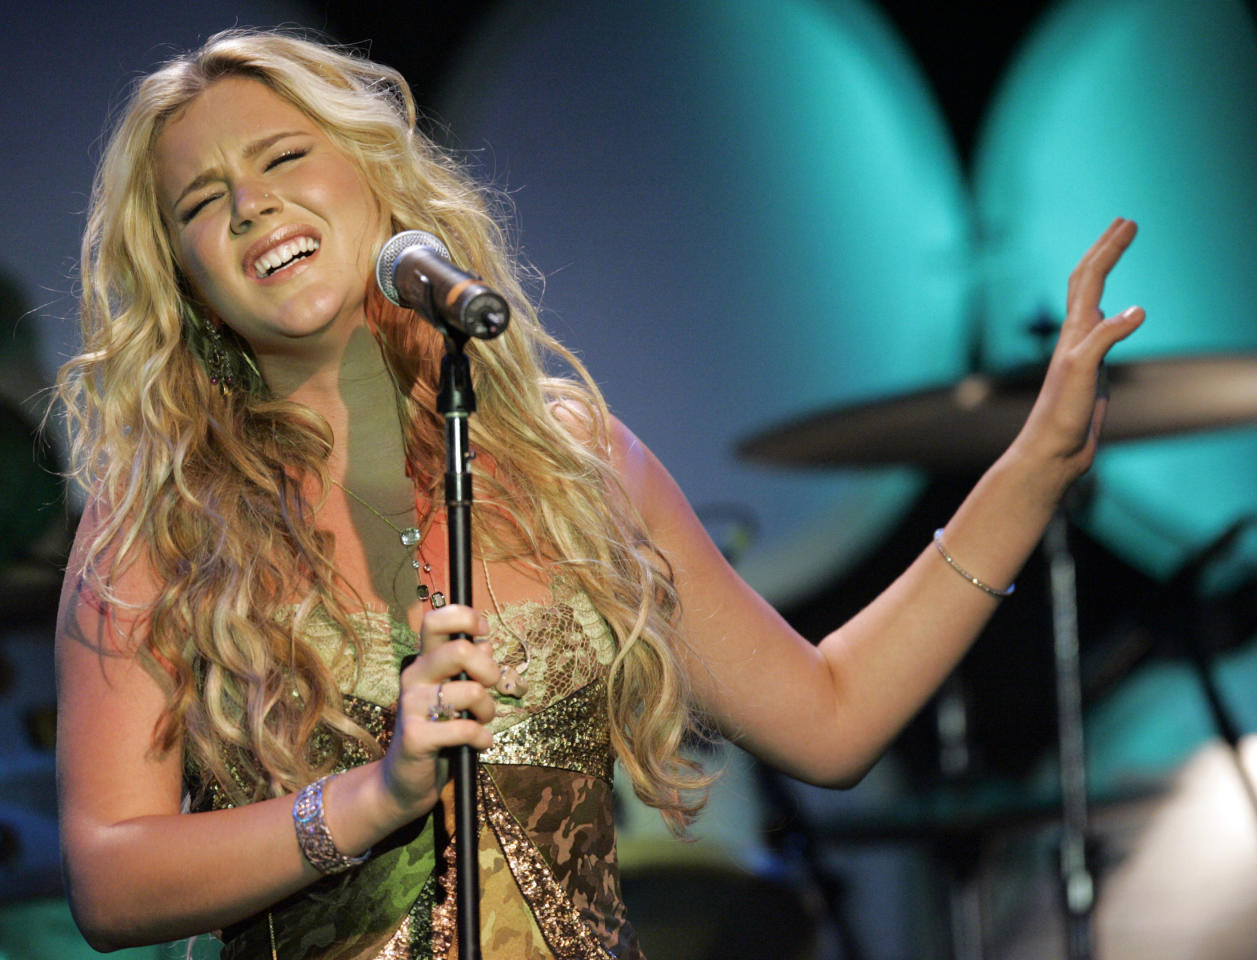 """Music recording artist Joss Stone performs Elton John's song """"Believe"""" at the 14th annual Ella awards at the Beverly Hilton hotel in Beverly Hills on October 10, 2005. Stone and other singers performed some of Elton John's biggest hits as a tribute to him for receiving the 2005 Ella award. REUTERS/Mario Anzuoni"""